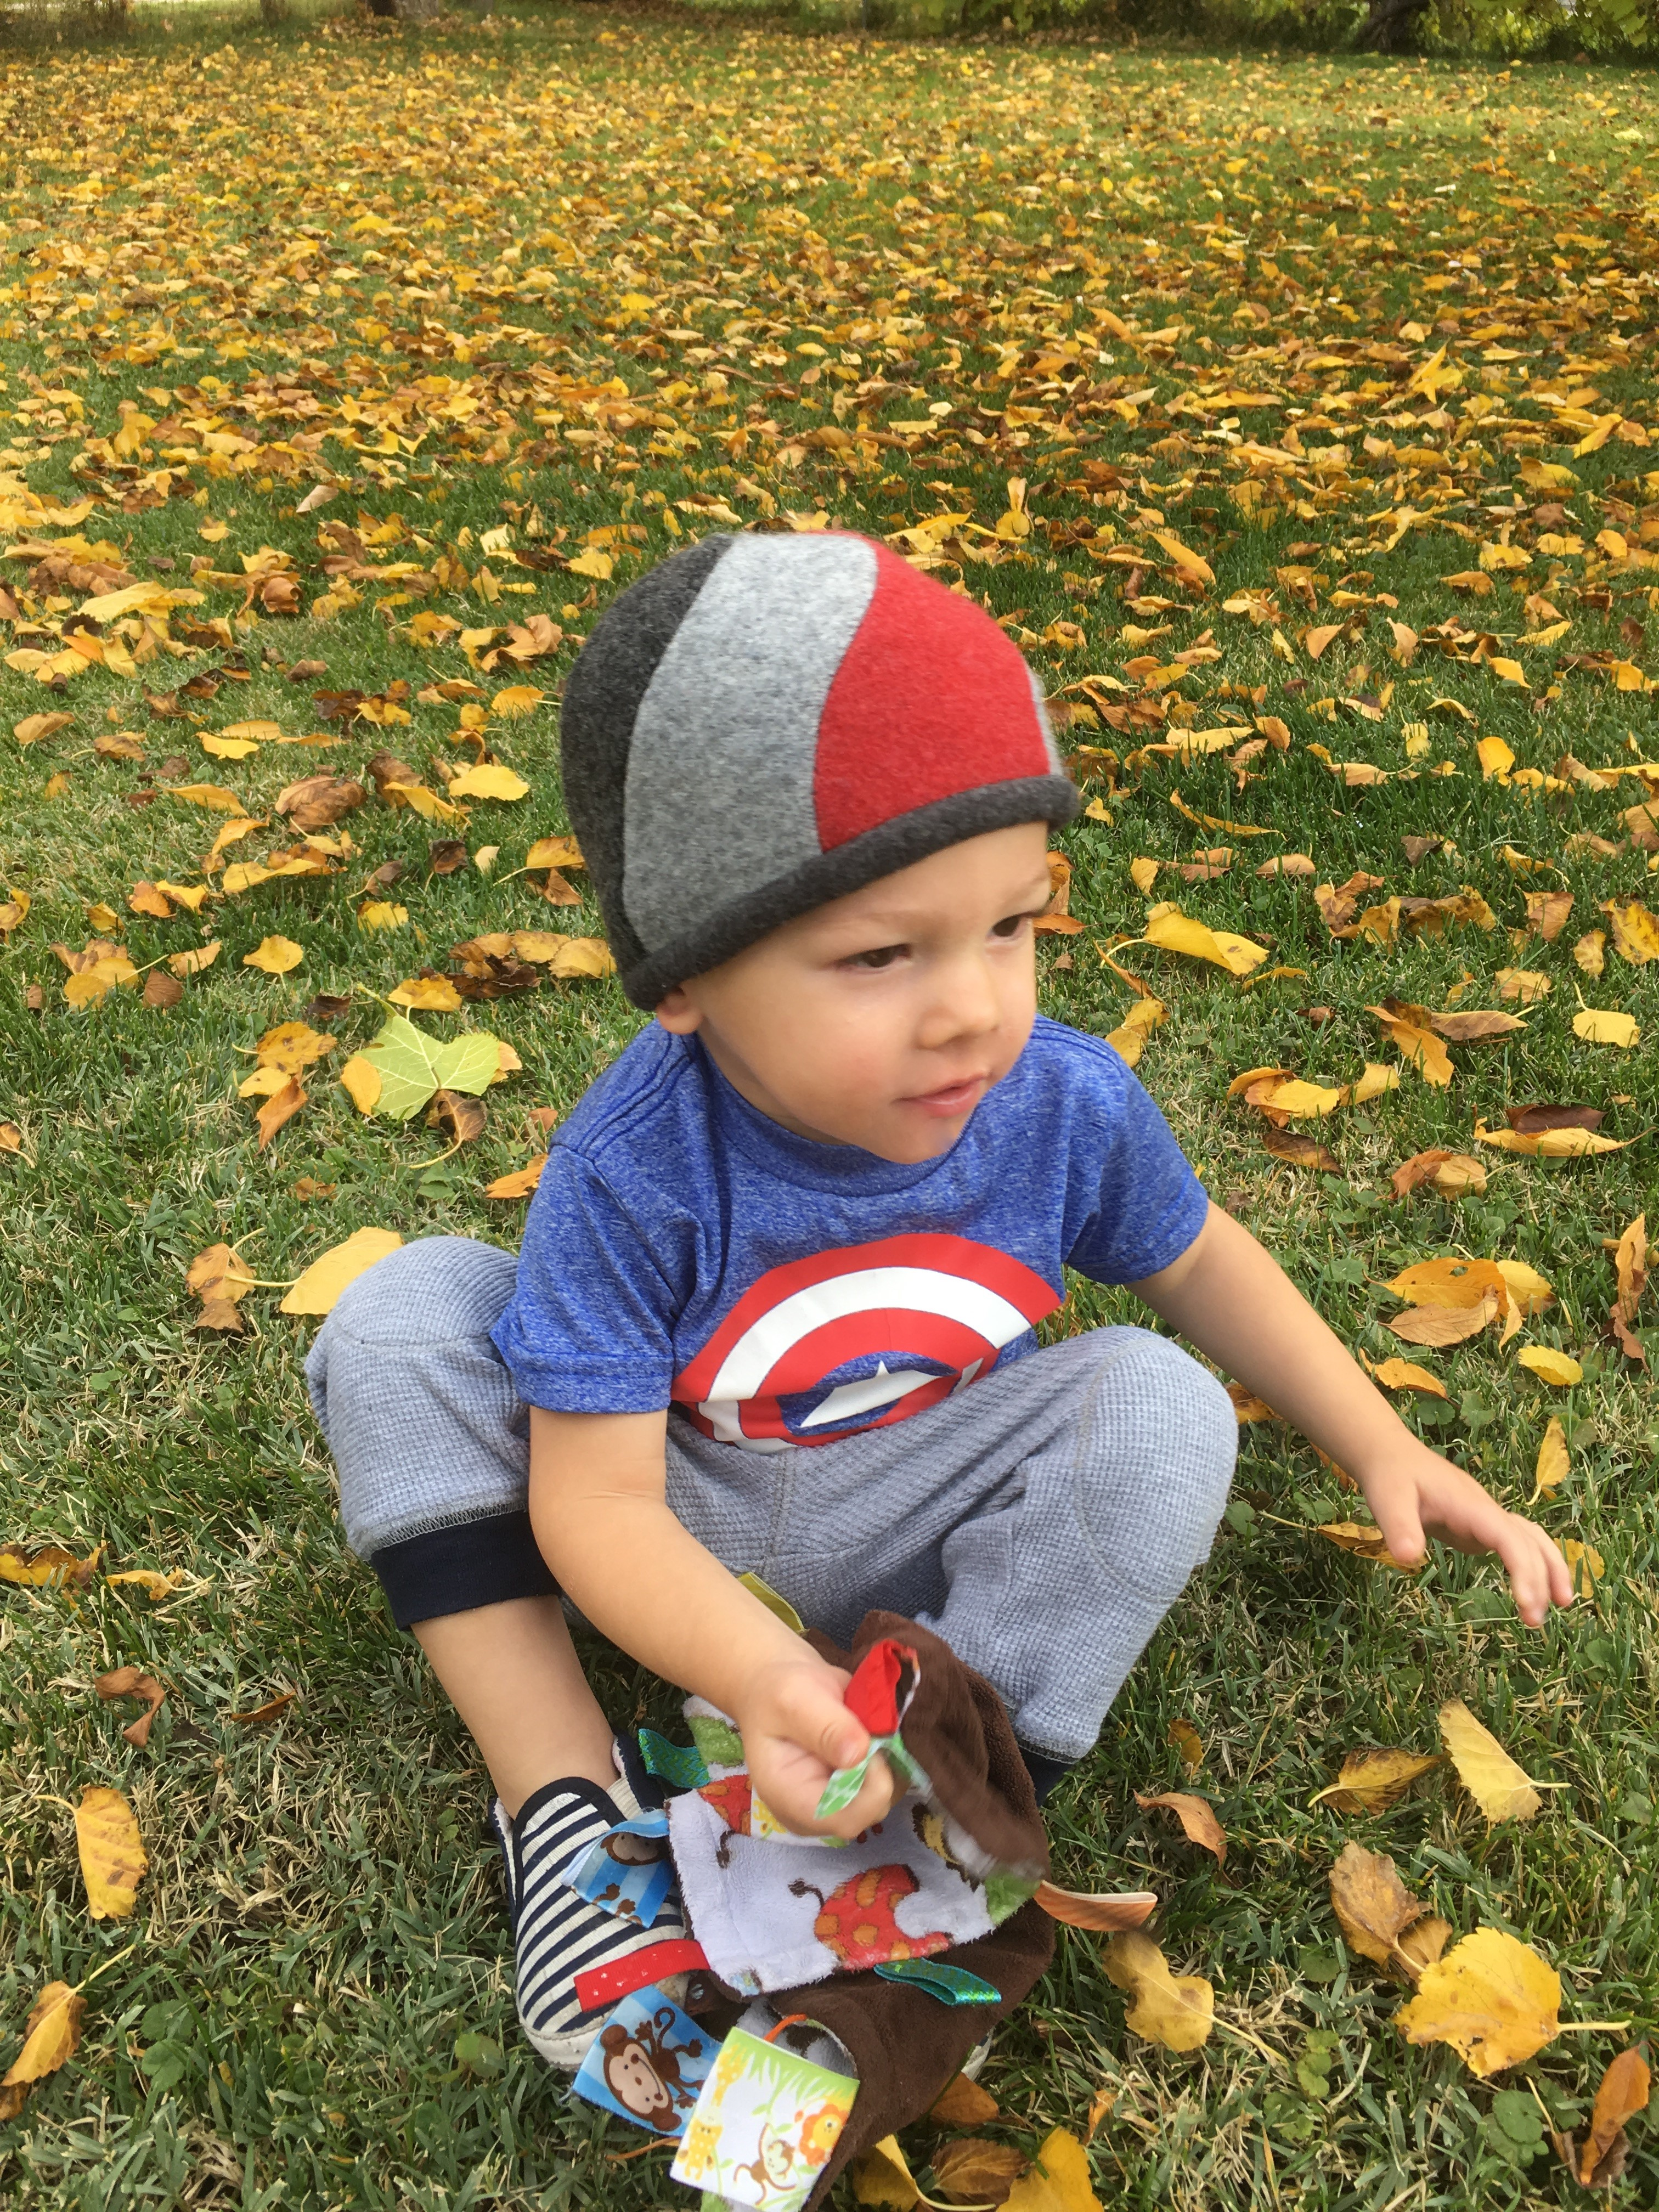 Spiral Beanie - Sewing PDF Pattern - 6-12 mo, Toddler, Child 3-10, Youth, Adult Large, Adult XLarge